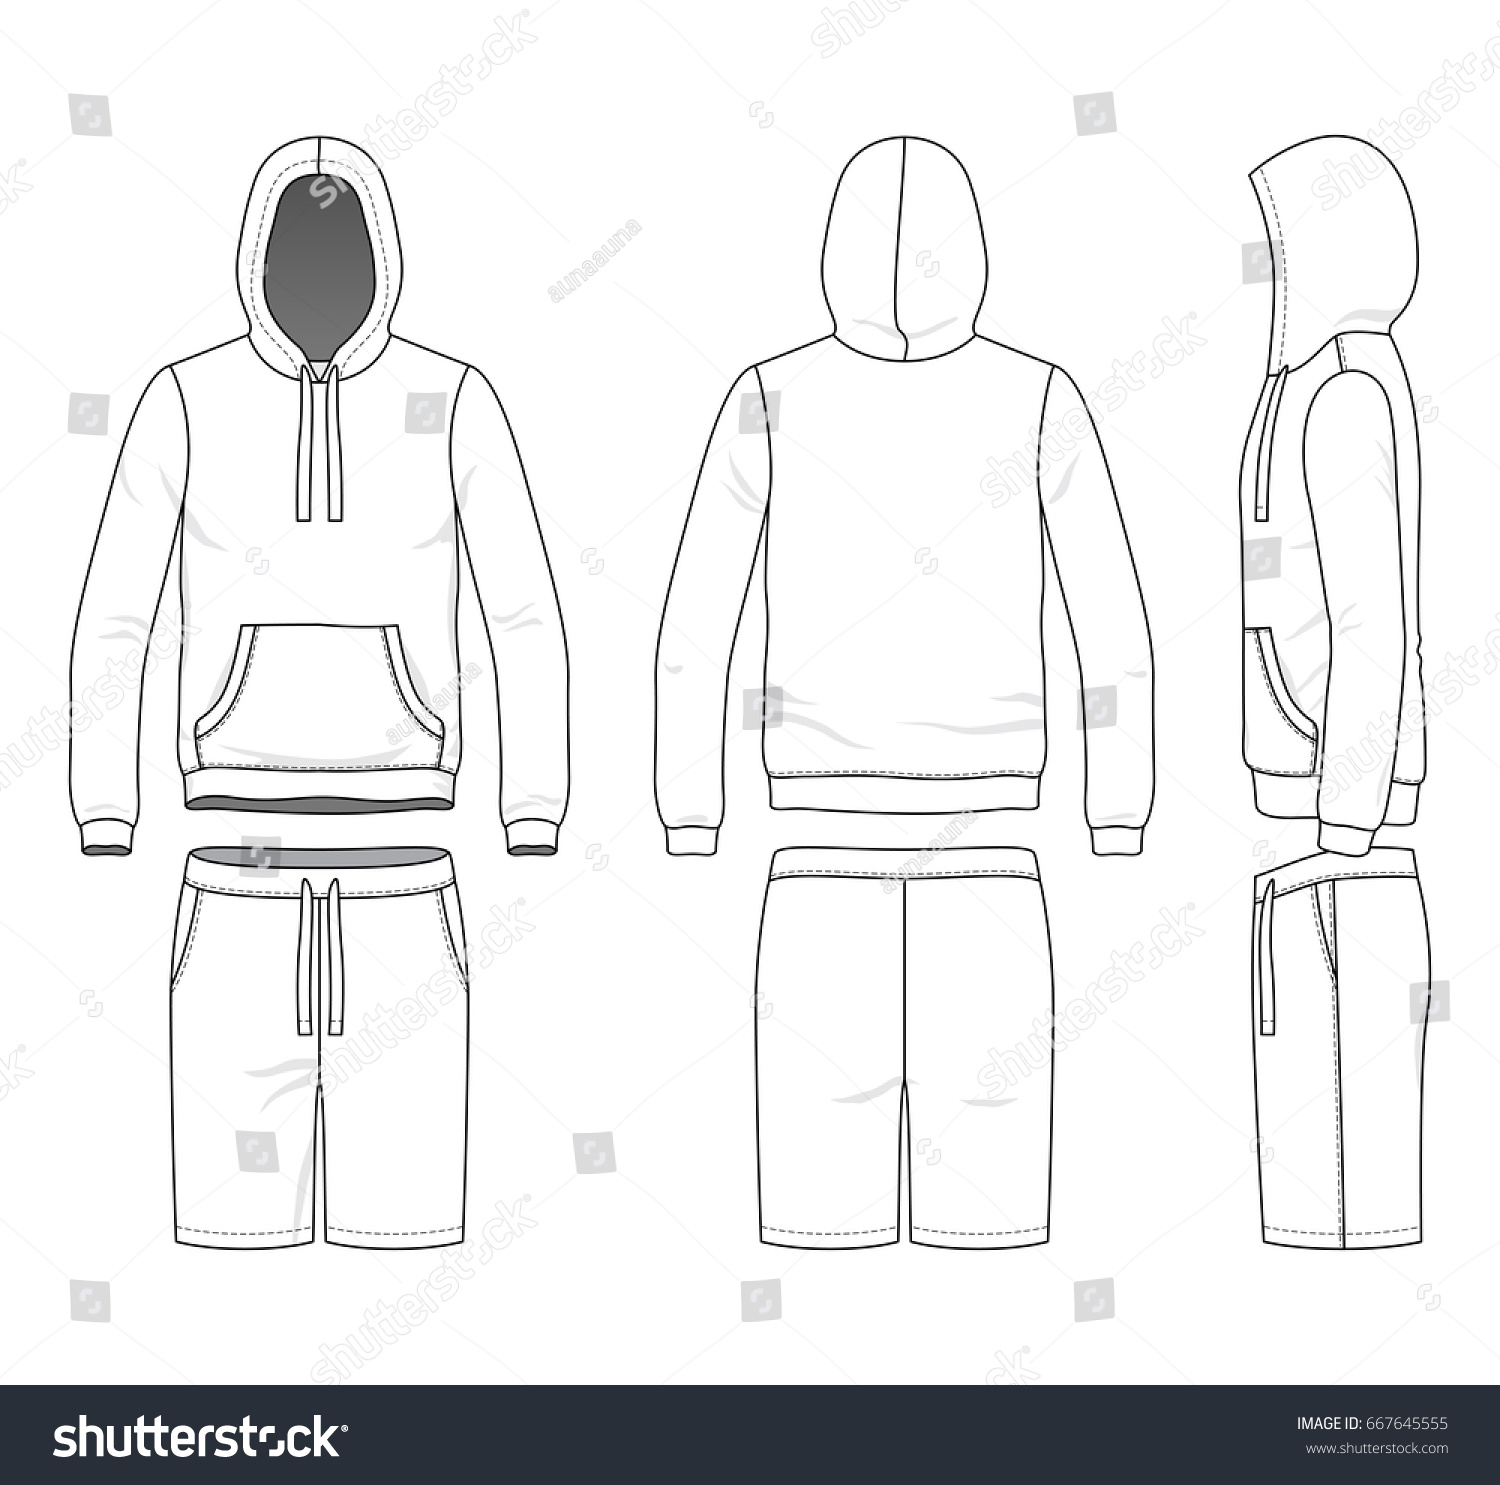 blank clothing templates vector illustration sweatshirt stock vector